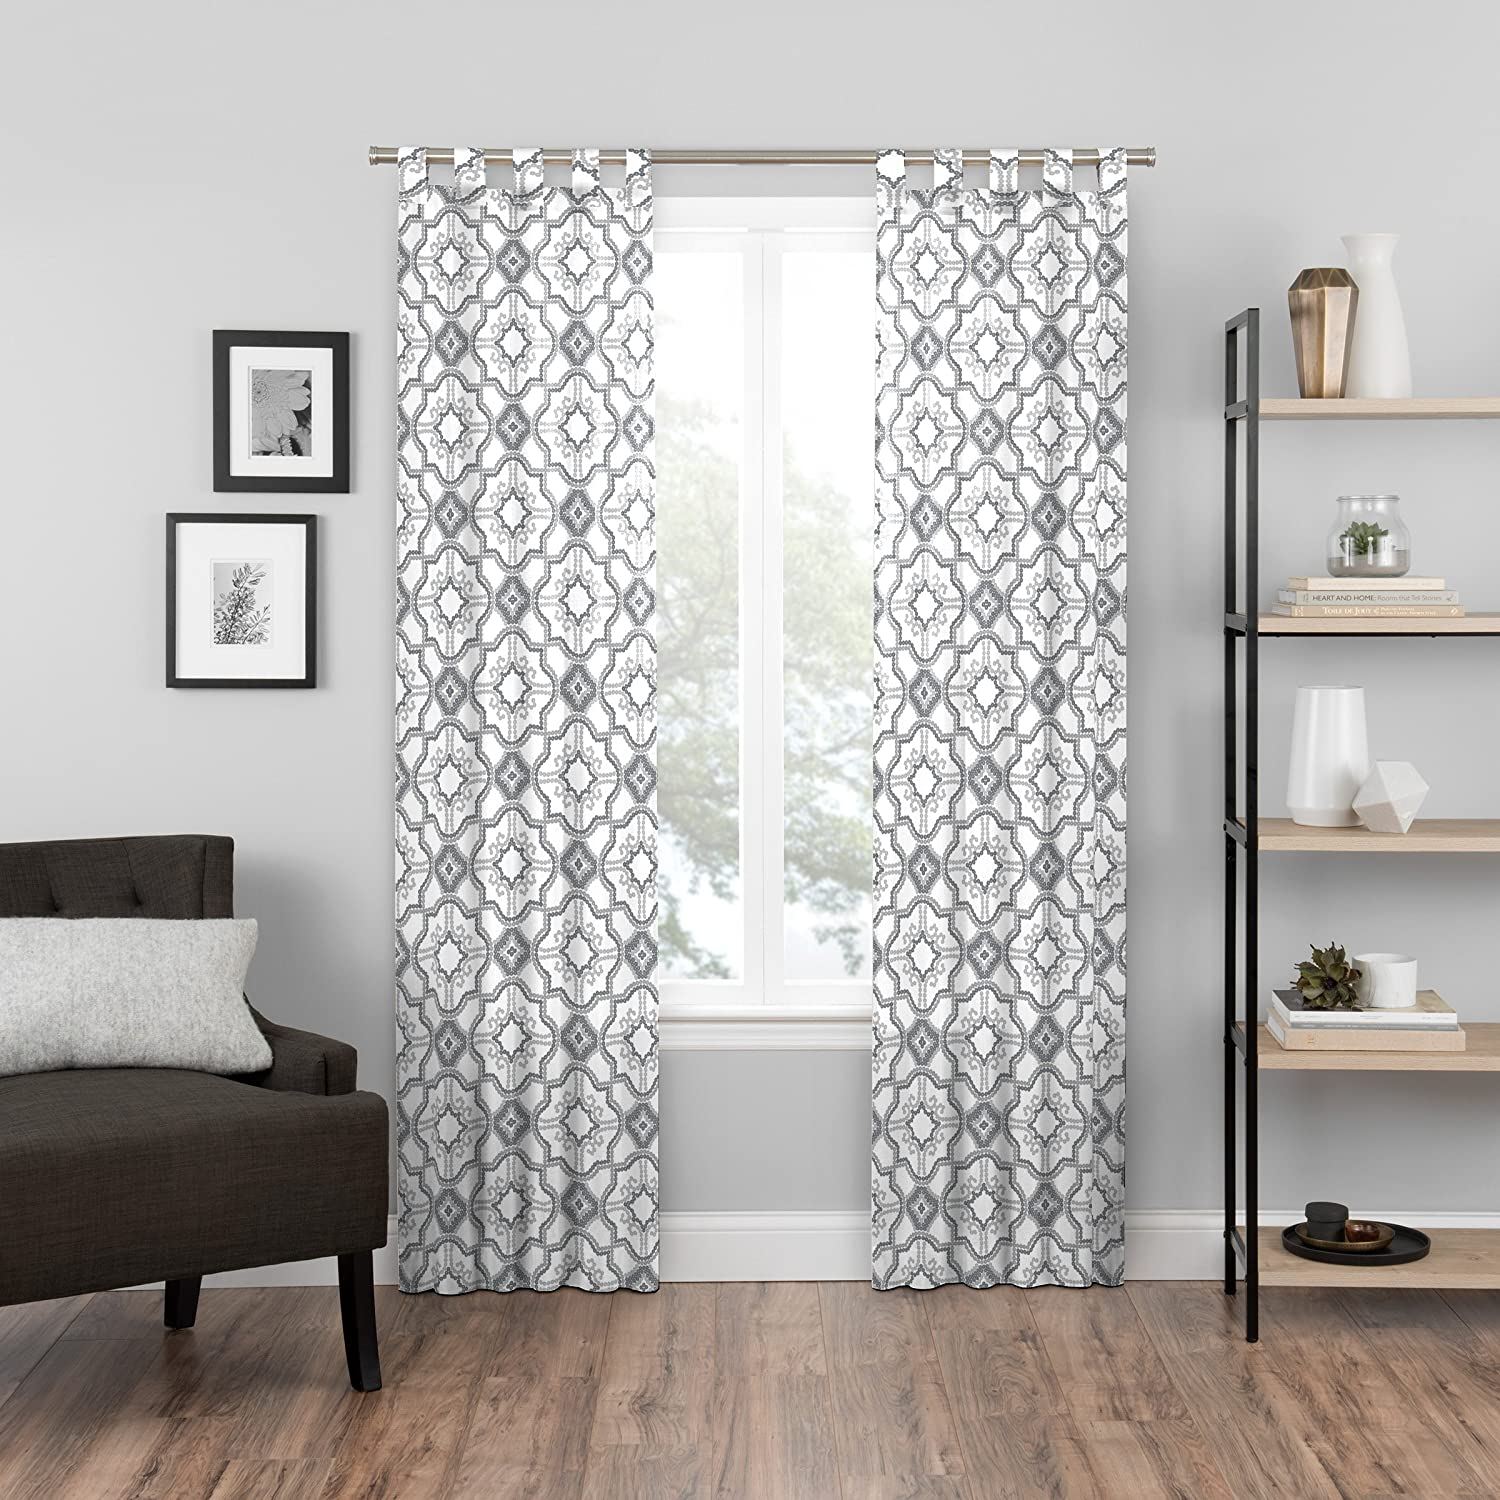 Pairs to Go Cecily 2-Pack Window Curtains 60x63 Black Ellery Homestyles 16548060X063BLK